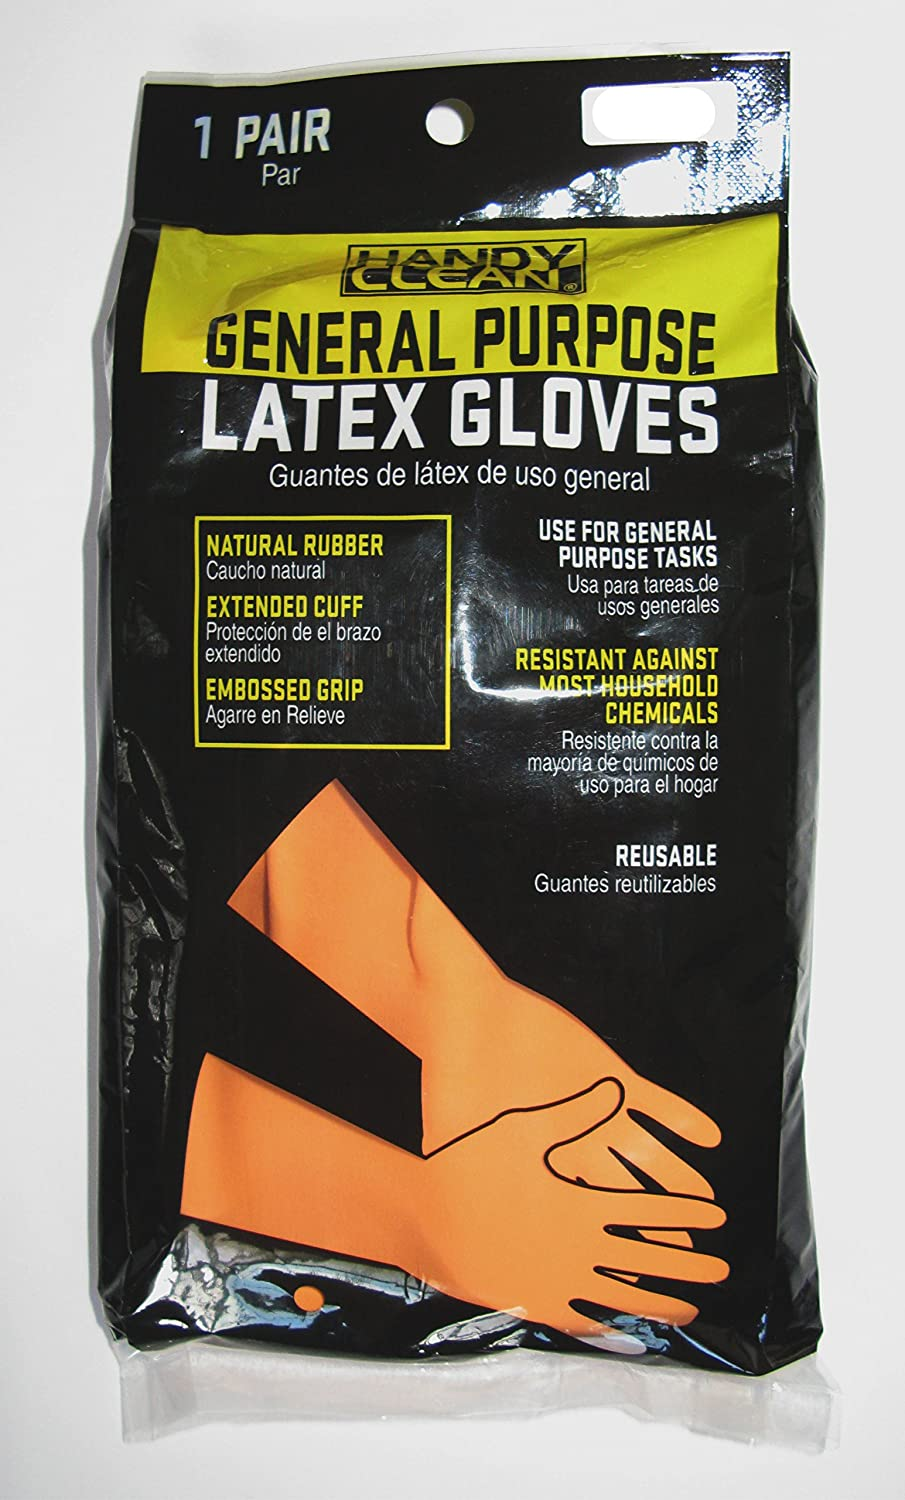 Red Steer 707-S Handy Clean Heavy Duty General Purpose Latex Gloves, Orange (Set of 2 Pairs) (Small) - - Amazon.com